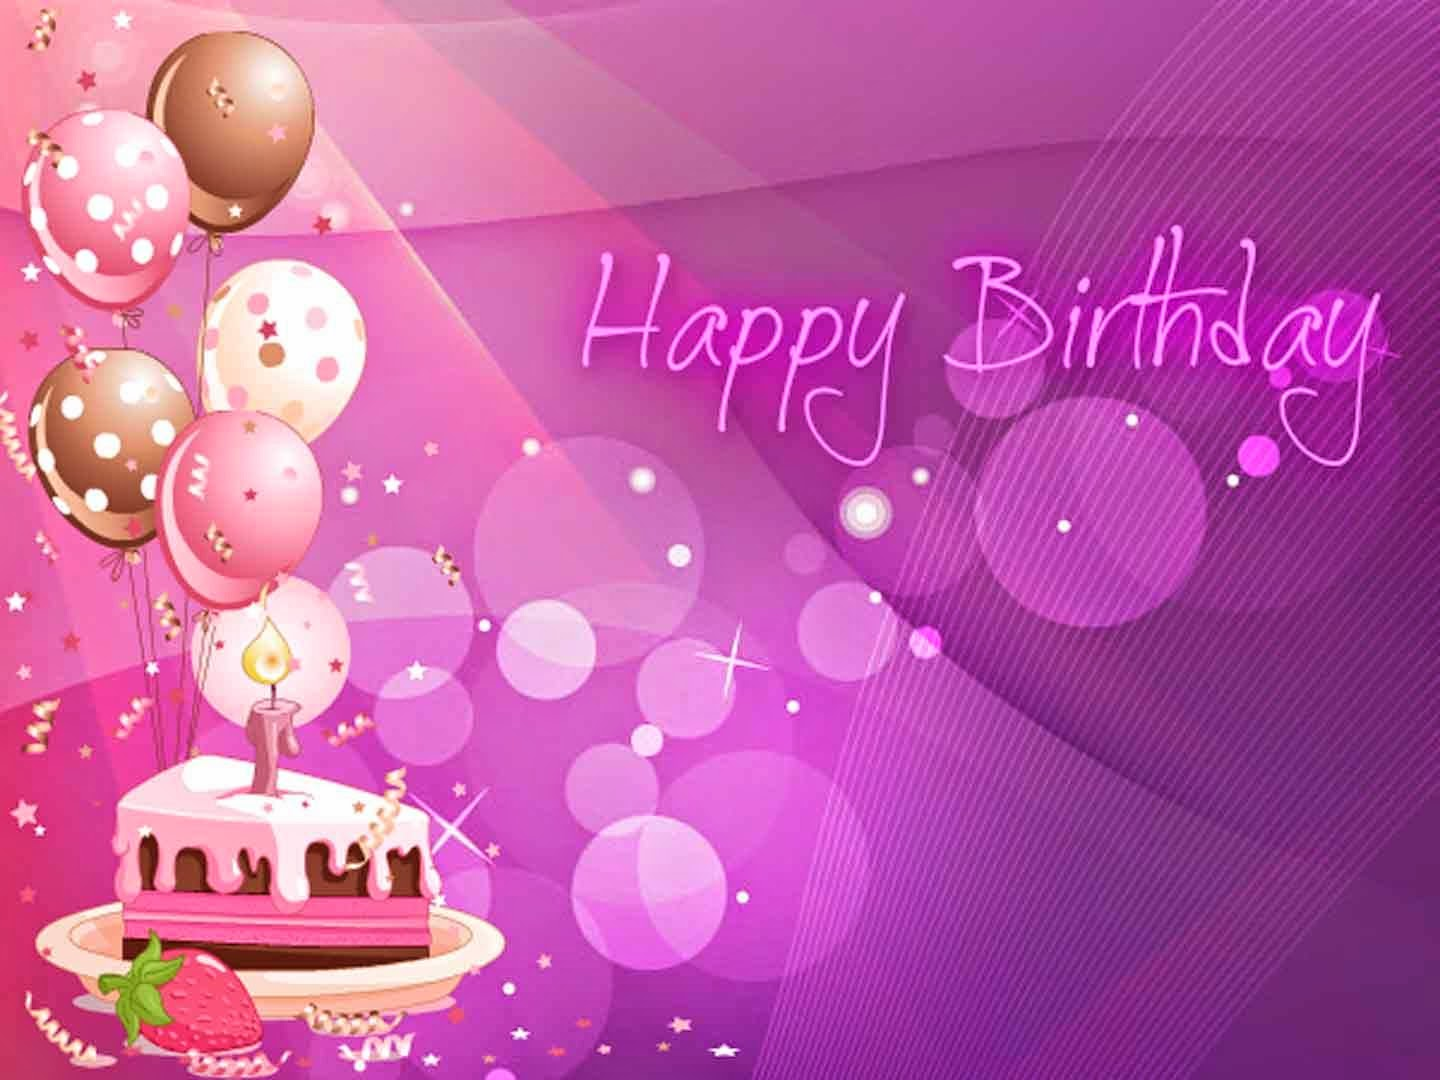 Happy Birthday Wallpapers | Download Free High Definition Desktop Backgrounds